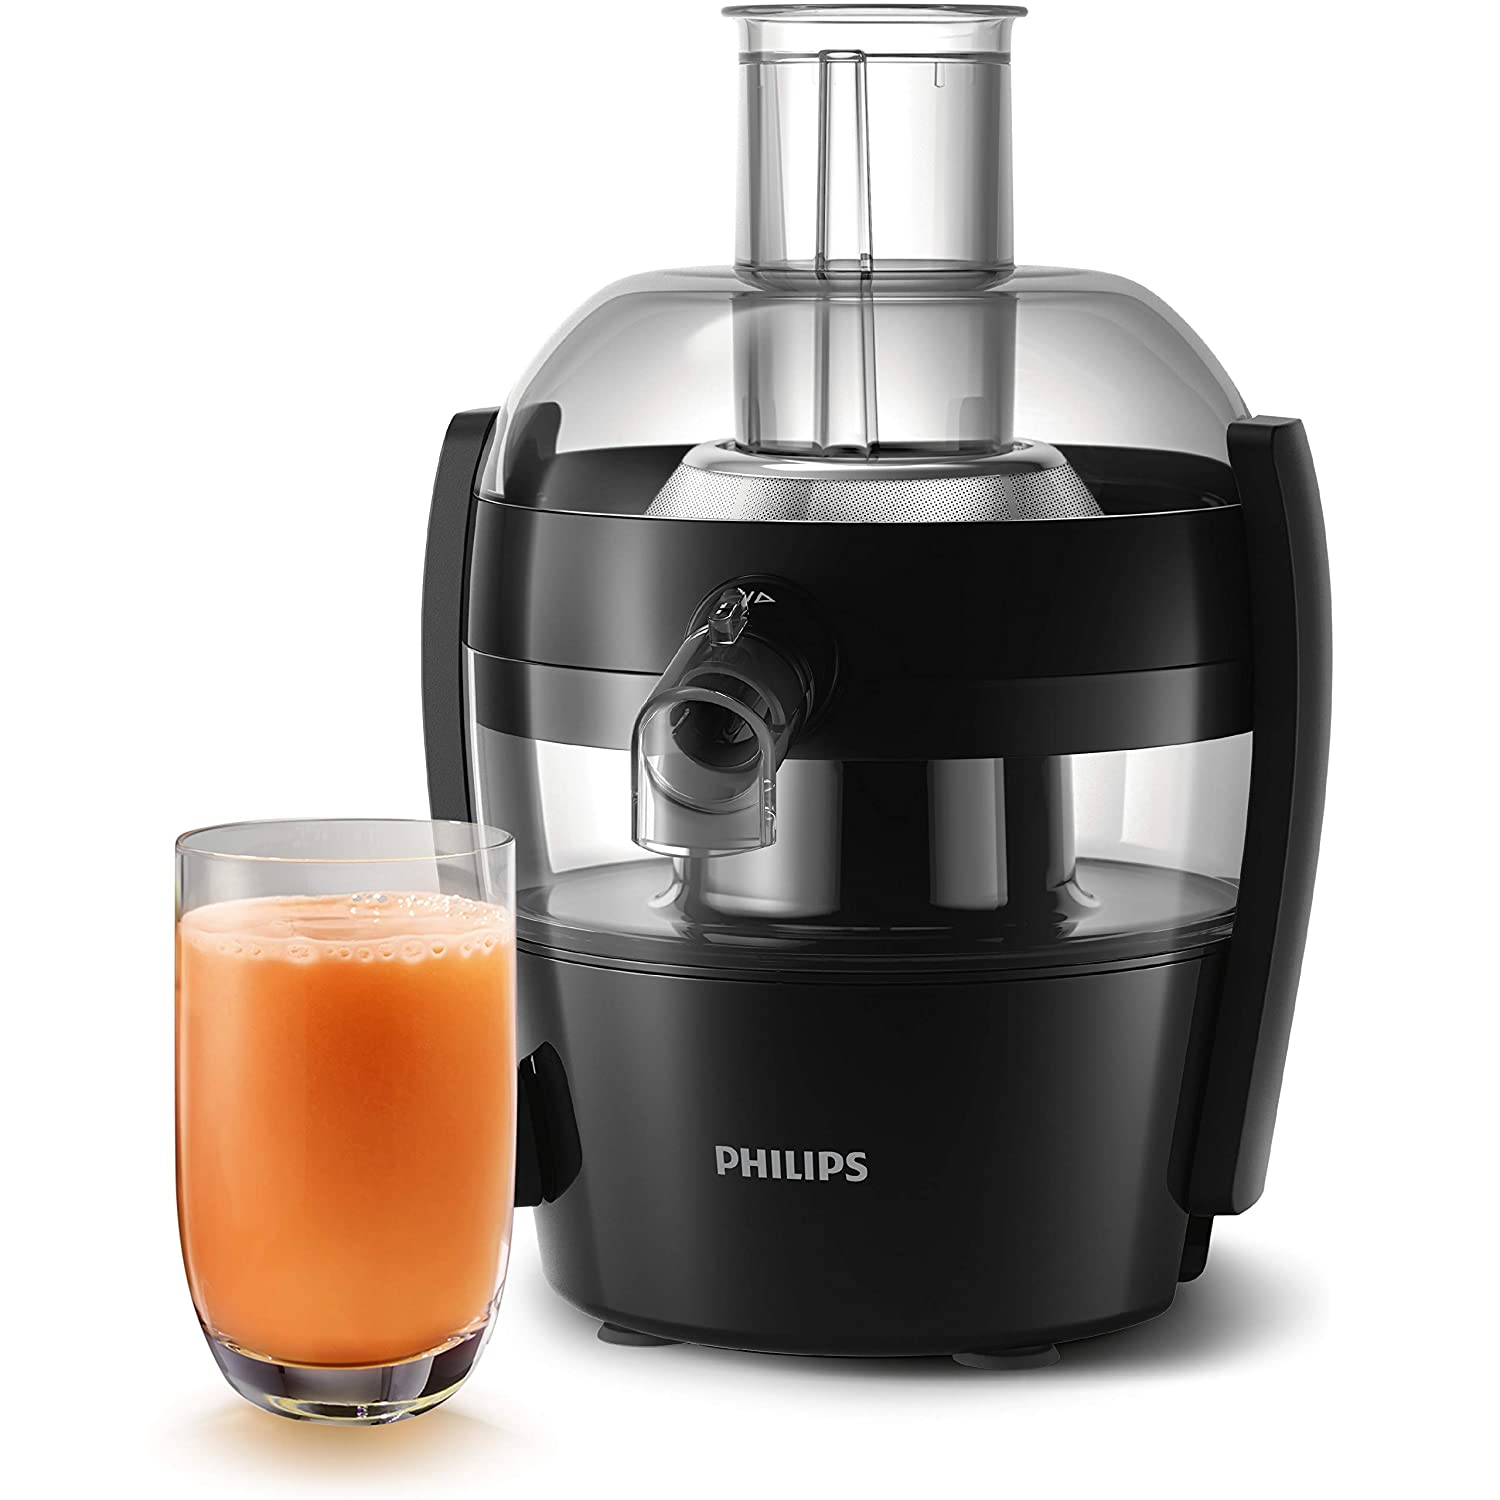 Philips Viva Collection HR1832/00 1.5-Litre 500-Watt Juicer (Ink Black)